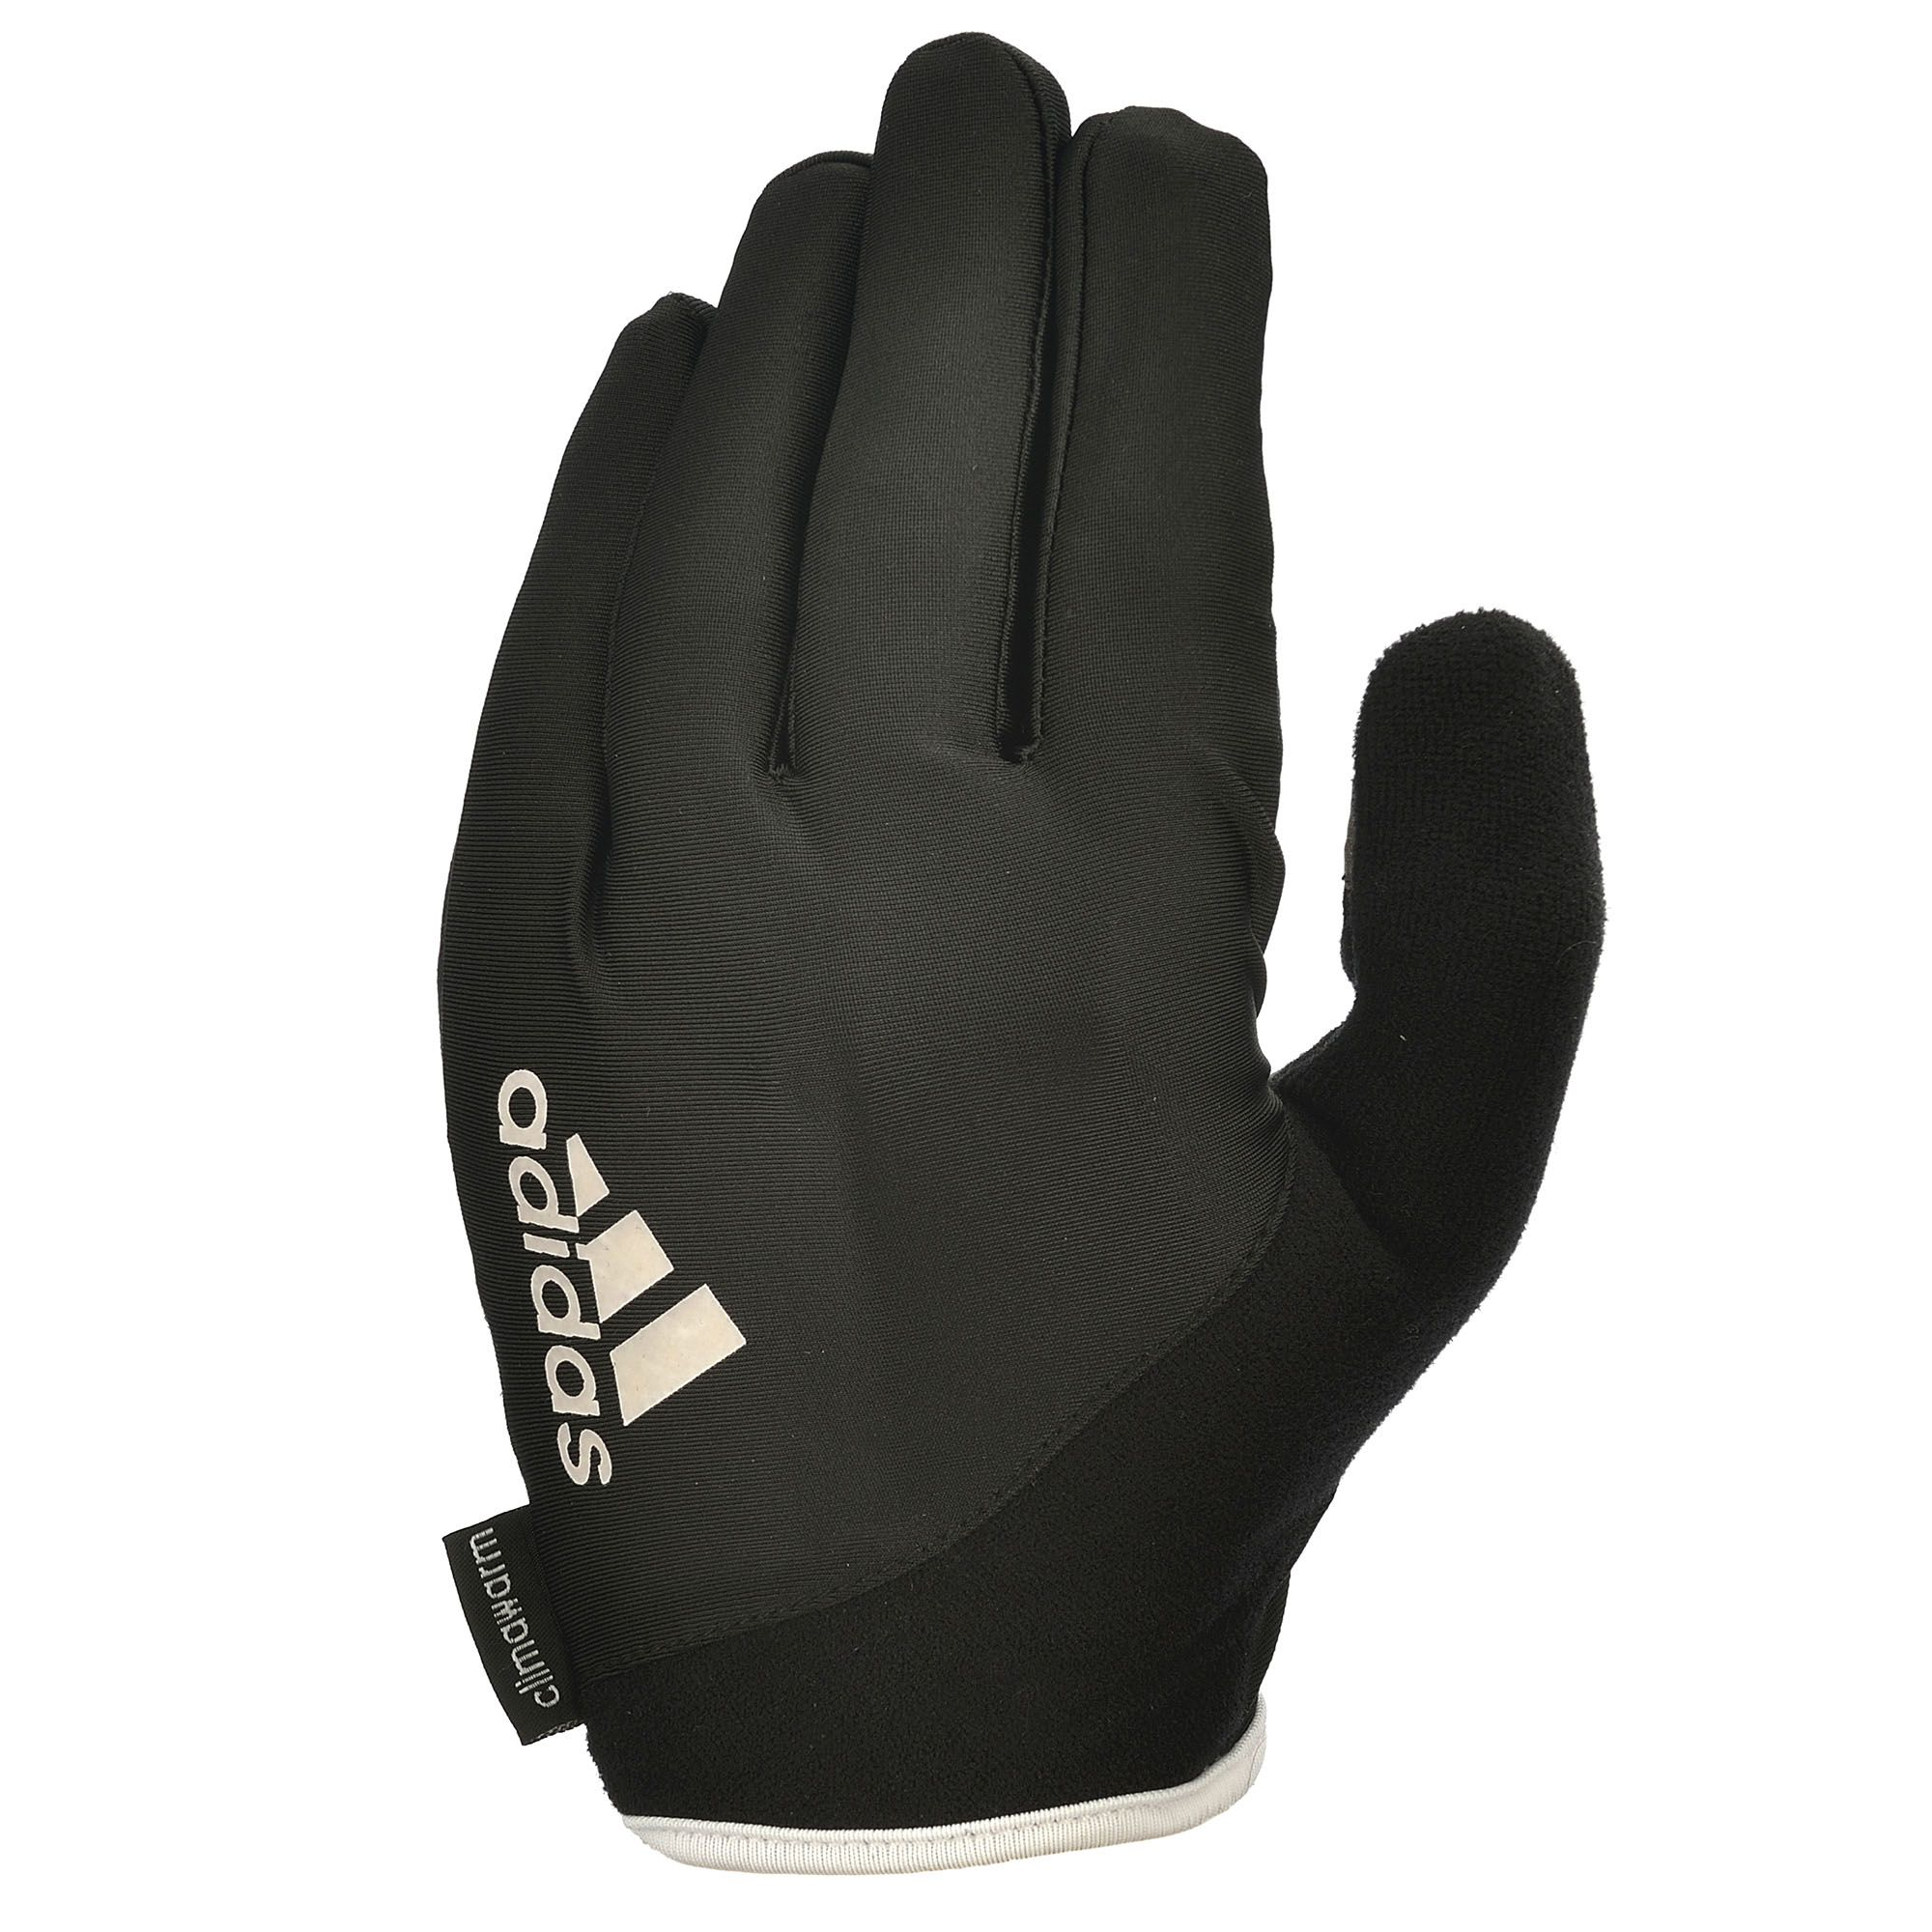 Dam Weight Lifting Gym Gloves Body Building Workout White: Adidas Essential Full Finger Gloves